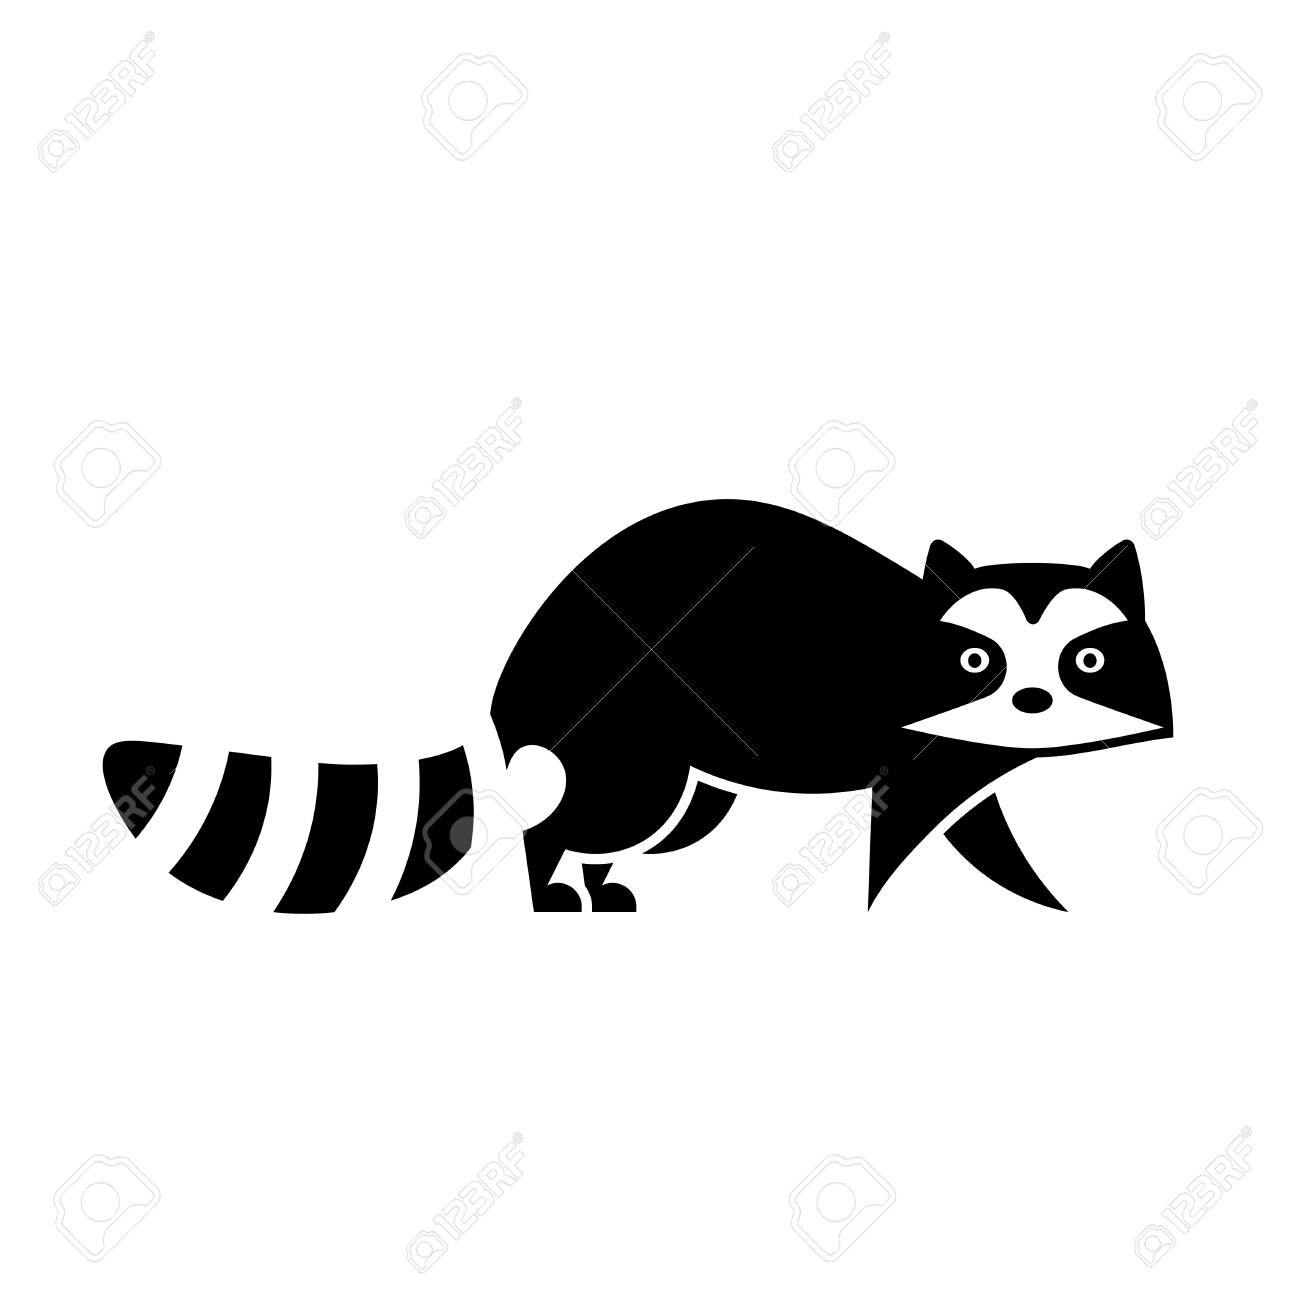 Wild Raccoon Icon Animal Control Clipart Isolated On White Background Stock Vector 112216903 Newcanaanitecom Raccoon Icon Animal Control Clipart Isolated On White Background